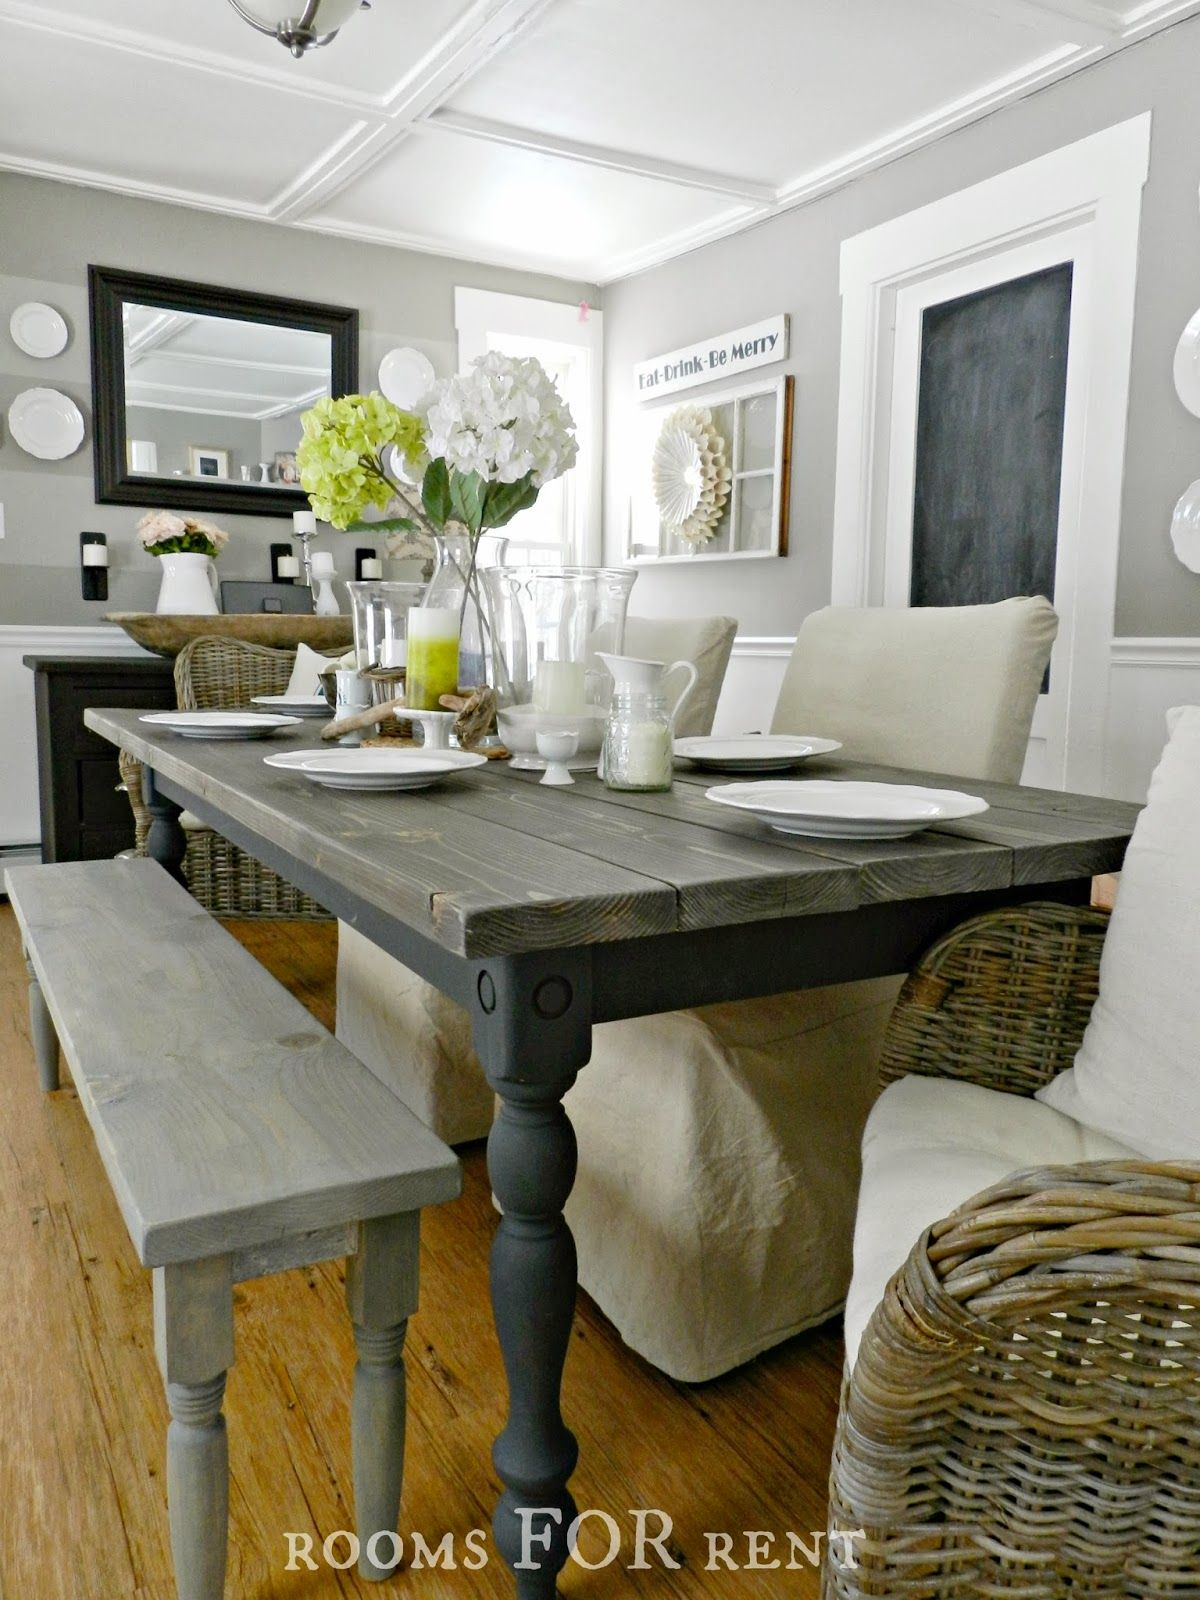 Rooms For Rent Our New Farmhouse Dining Table Farmhouse Dining Table Farmhouse Dining Farmhouse Dining Room